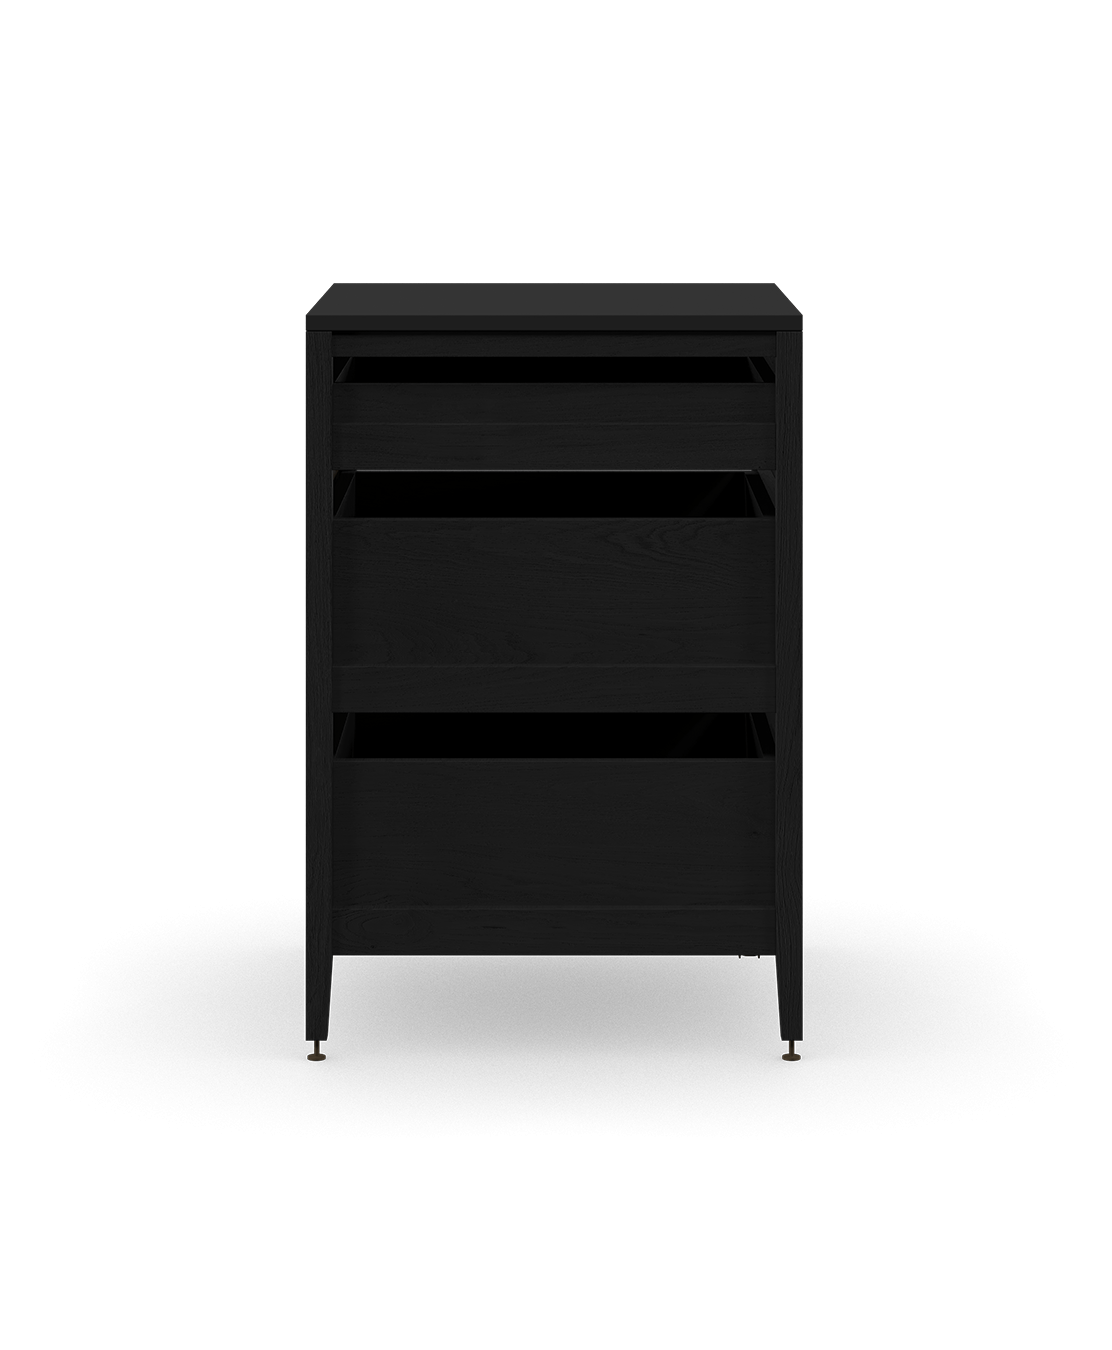 coquo radix midnight black stained oak solid wood modular 3 drawers base kitchen cabinet 27 inch C1-C-27TB-3001-BK